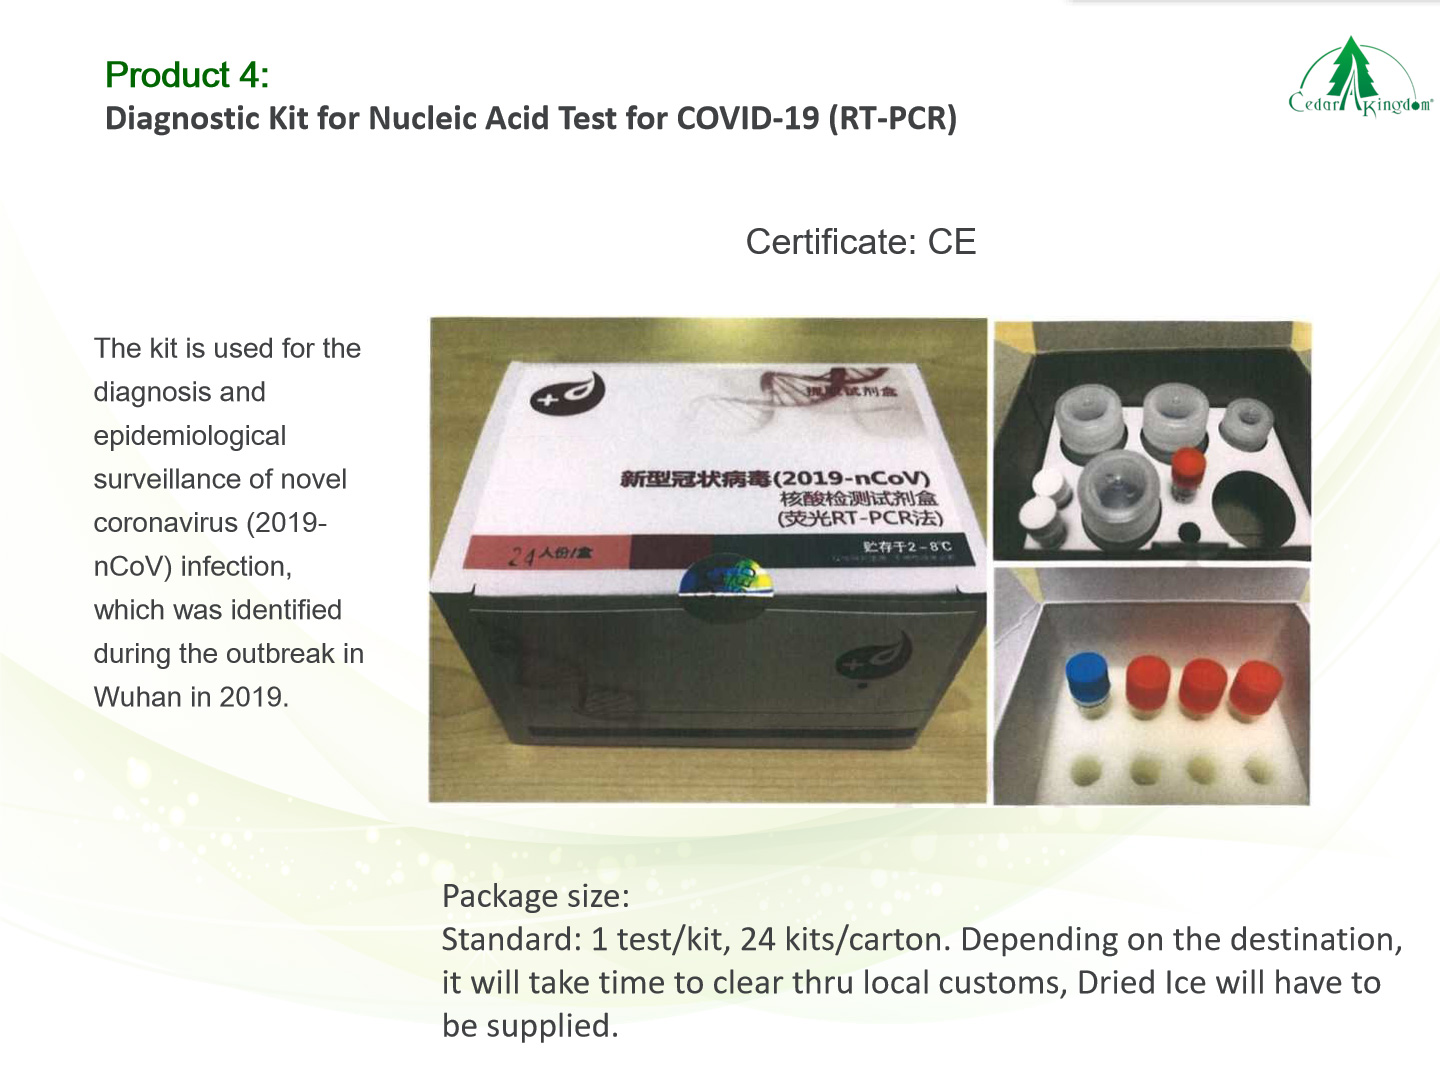 Diagnostic-Kit-for-Nucleic-Acid-Test-for-COVID-19